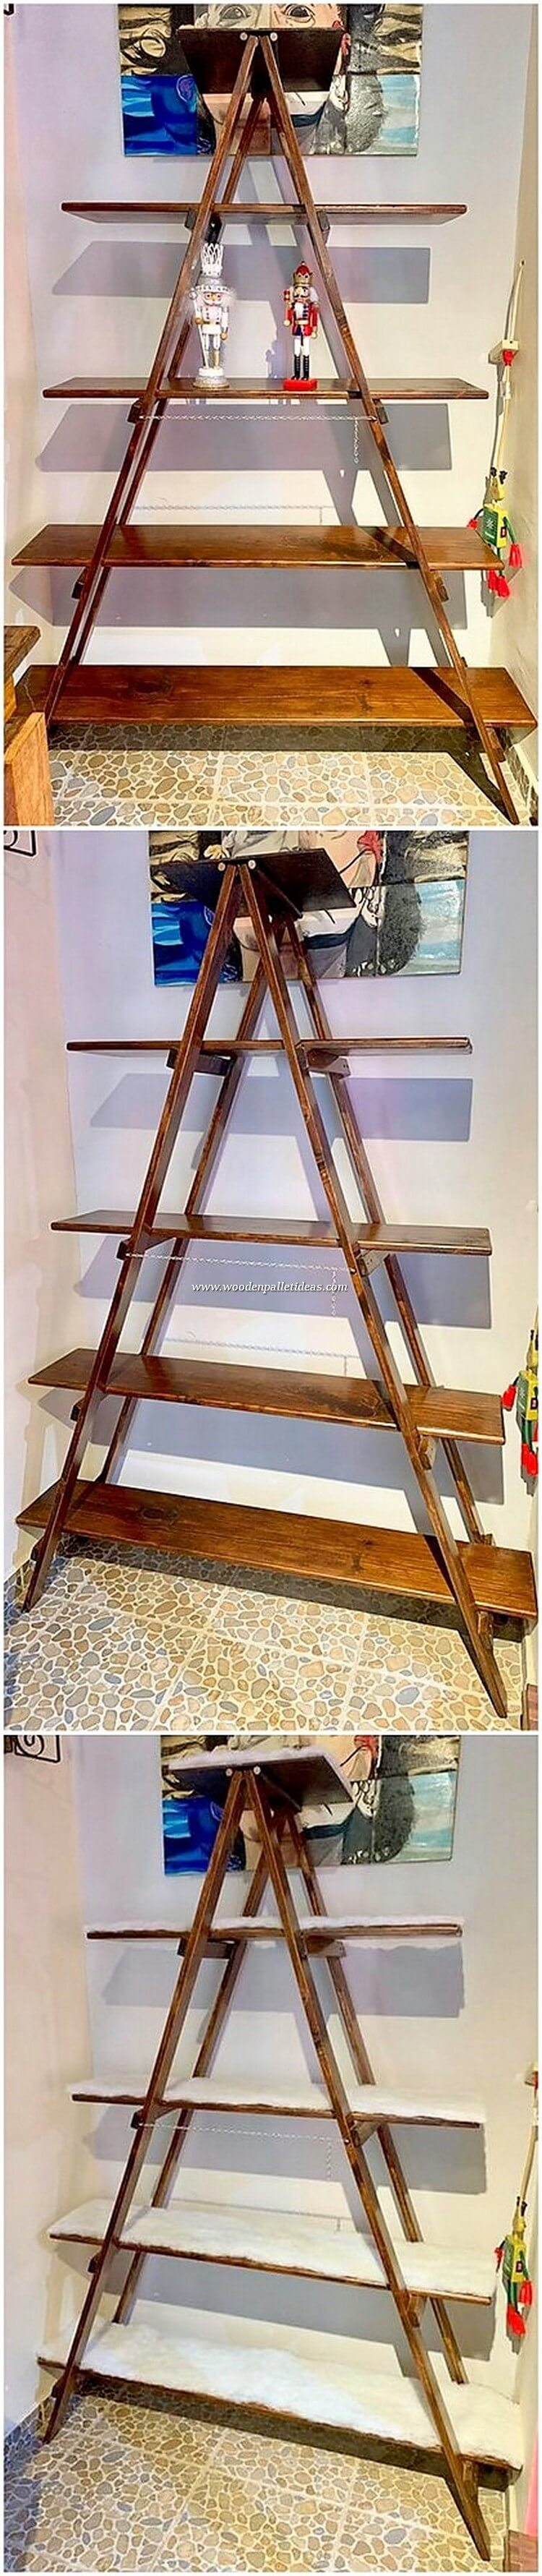 Pallet-Ladder-Shelf-1